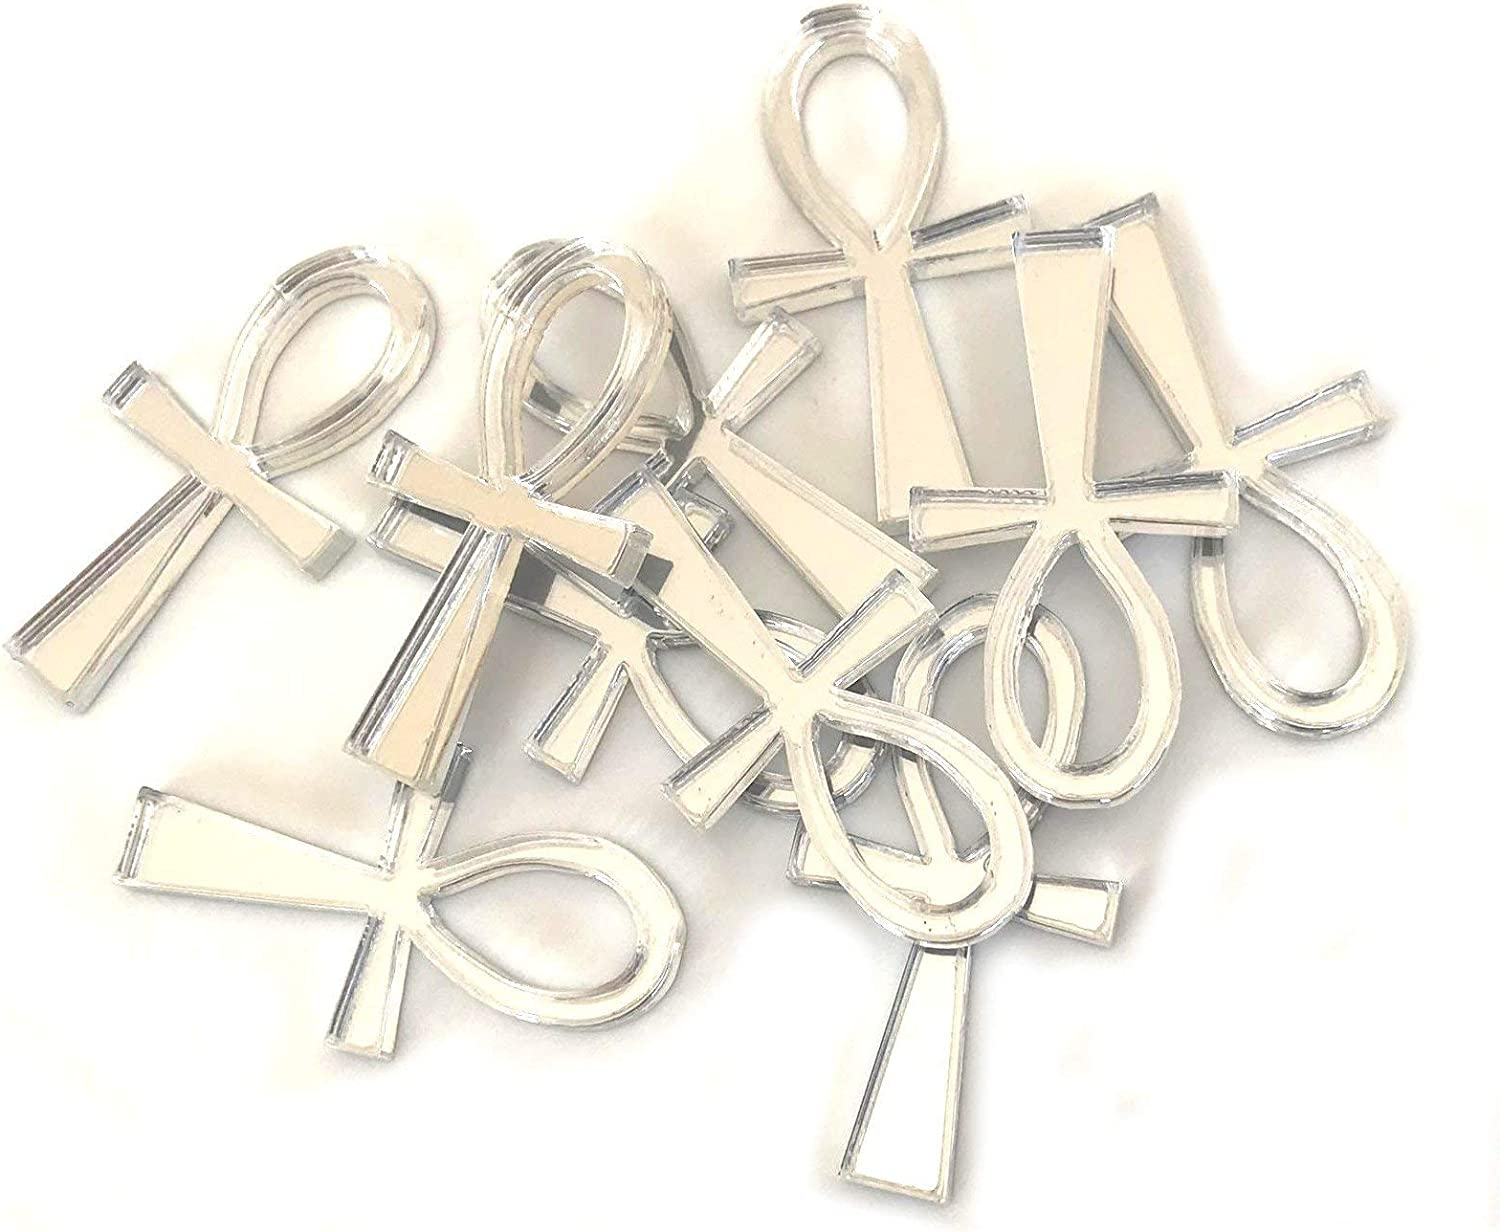 Super 5 ☆ popular Cool Fees free!! Creations Ankh Shaped Crafting Ma Mirrors Set of 10